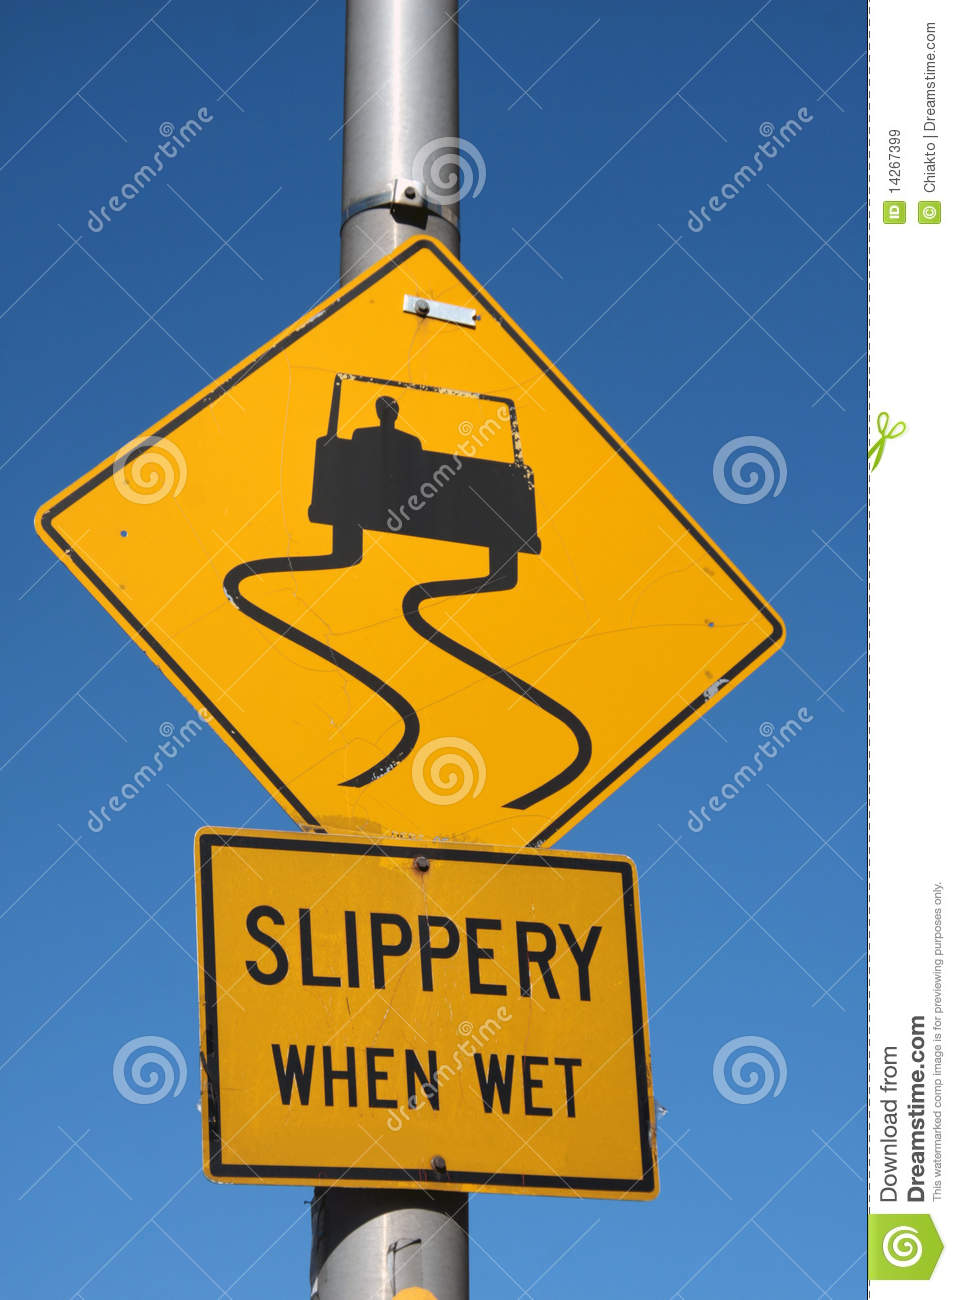 Slippery When Wet Royalty Free Stock Images Image 14267399